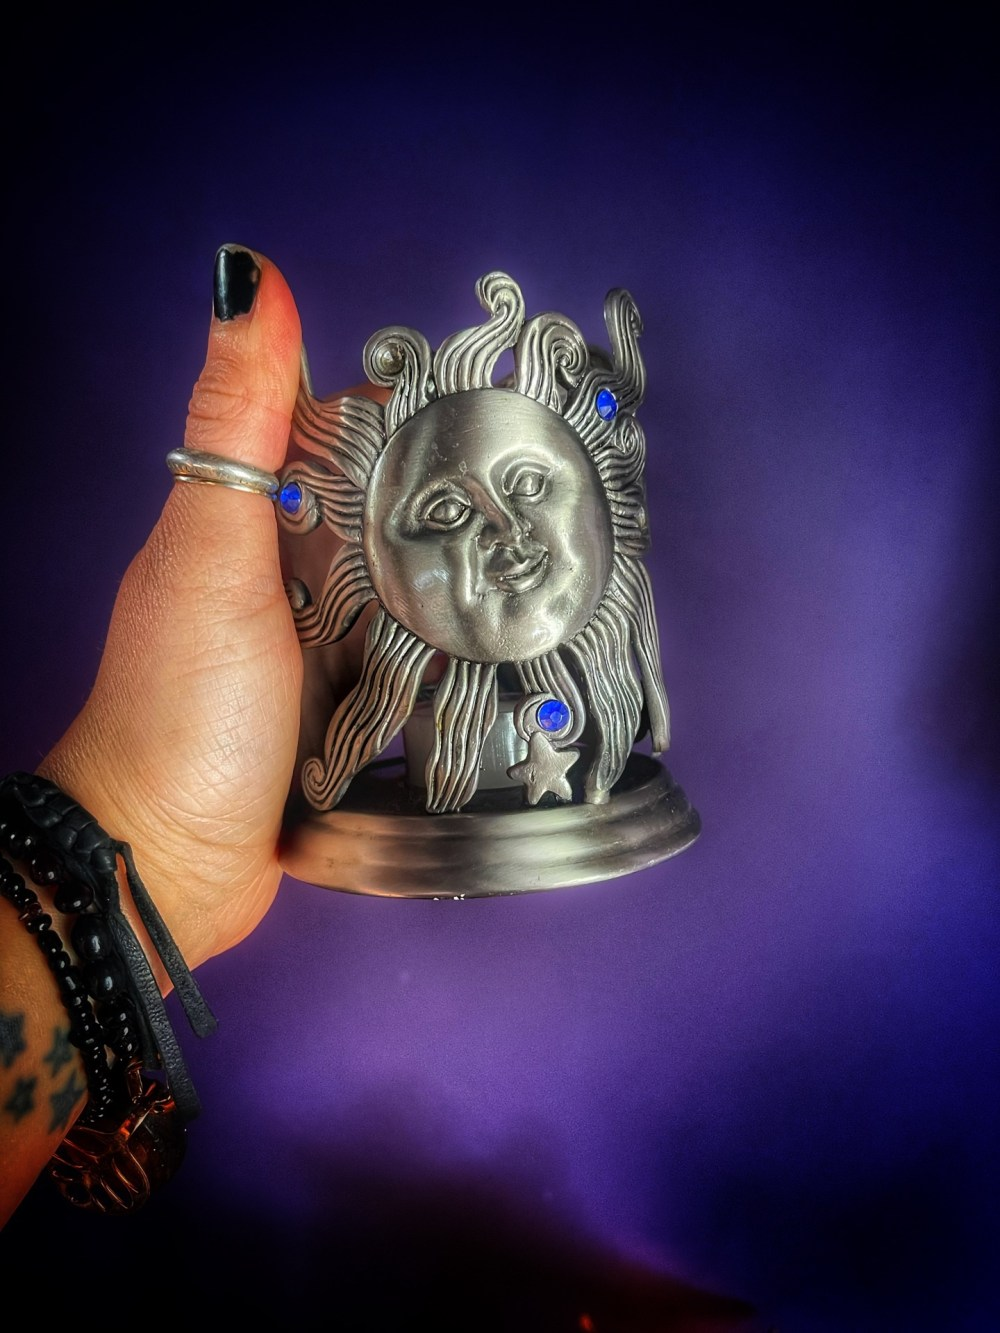 90's Celestial Oil Diffuser Candle Holder